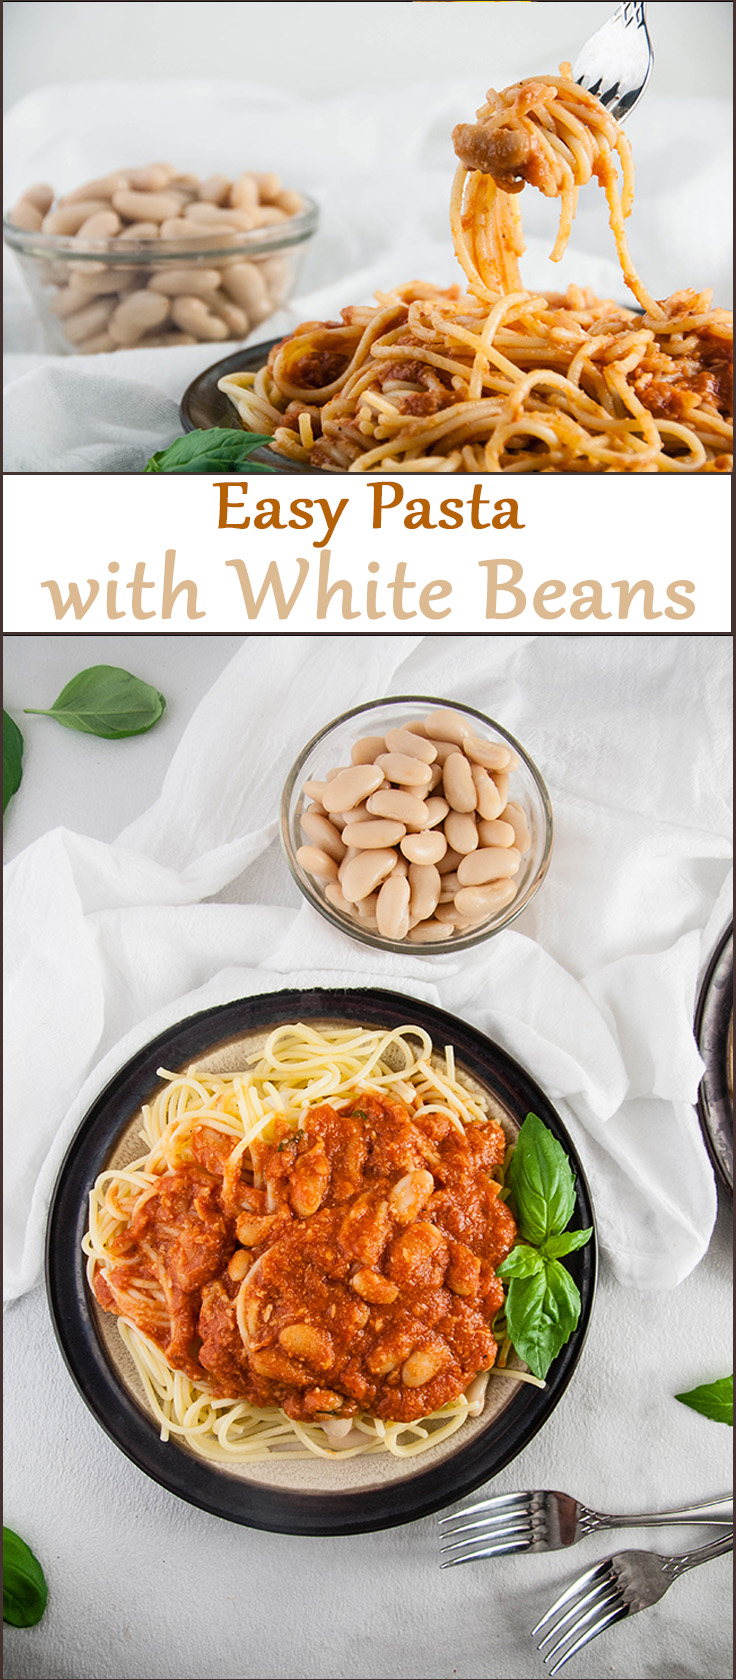 Easy Pasta with White Beans from www.SeasonedSprinkles.com